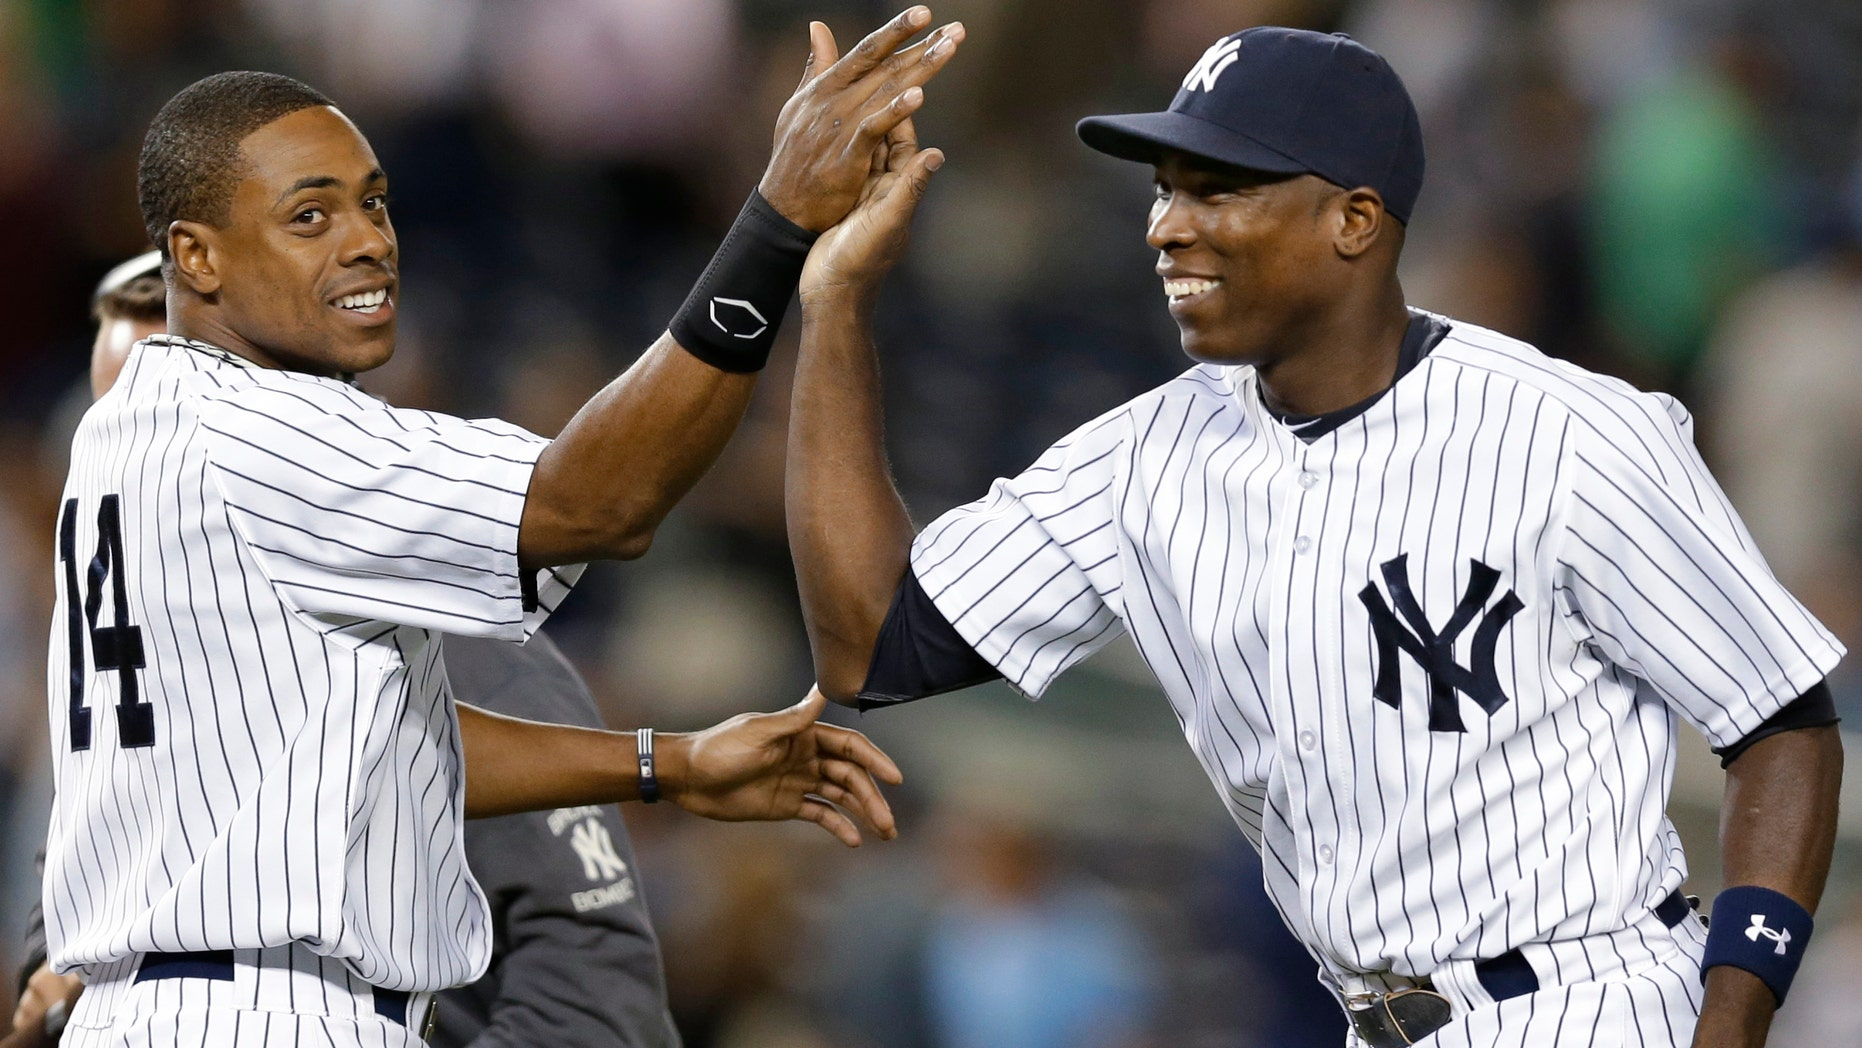 New York Yankees right fielder Curtis Granderson, left, congratulates left fielder Alfonso Soriano. (AP Photo/Kathy Willens)